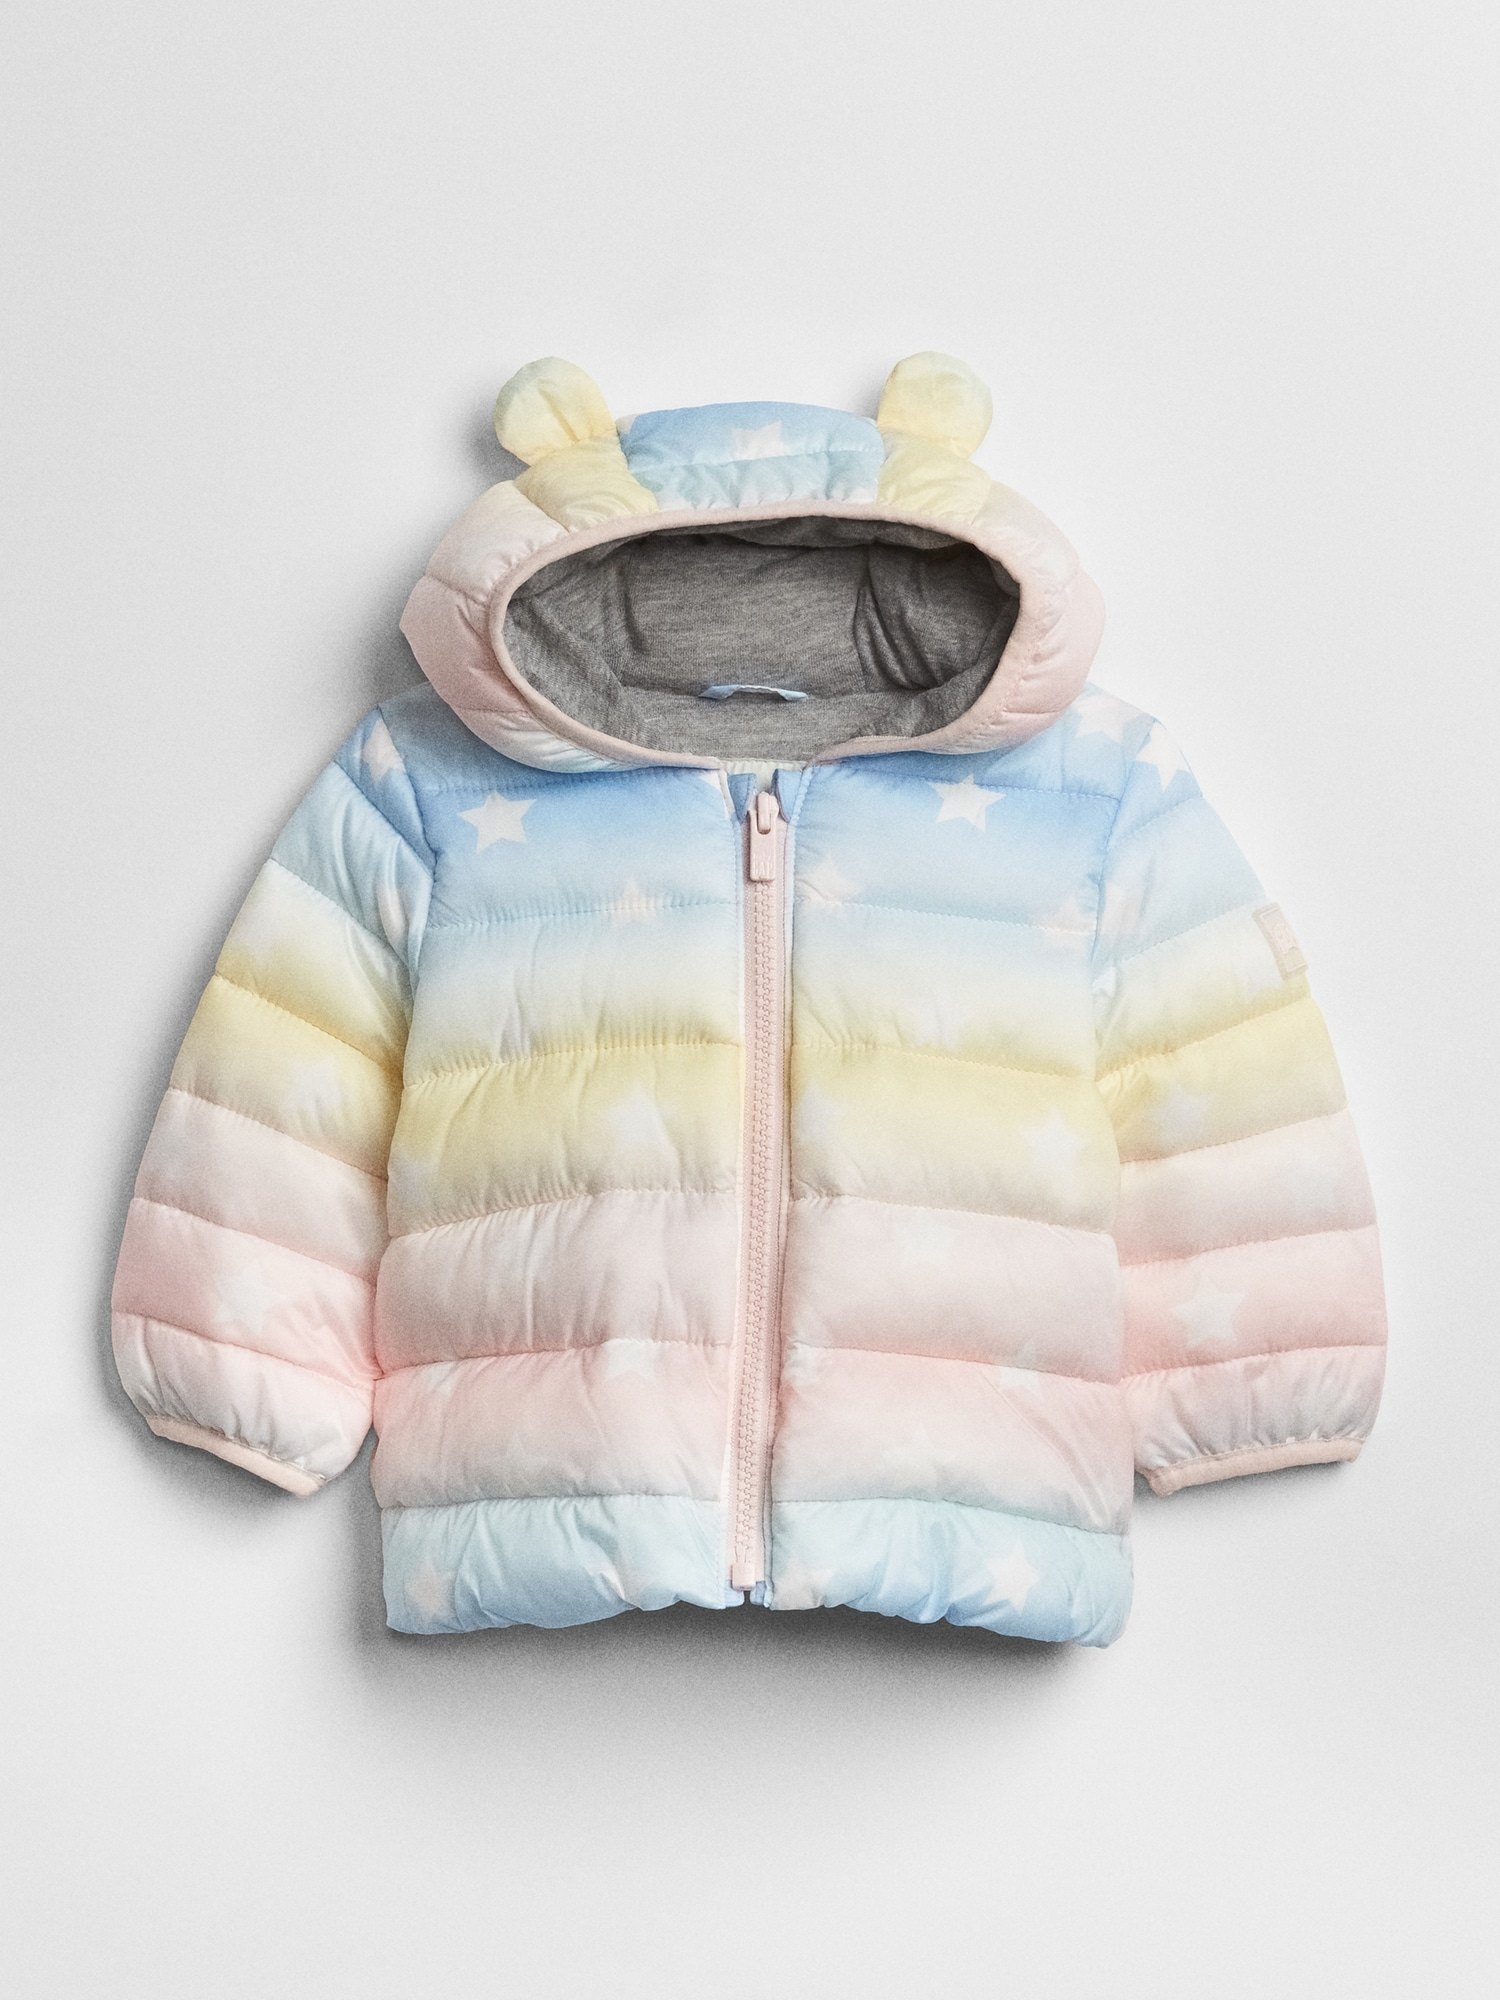 100% Quality Reversible Jacket Girl Gap Coldcontrol Lite Outerwear